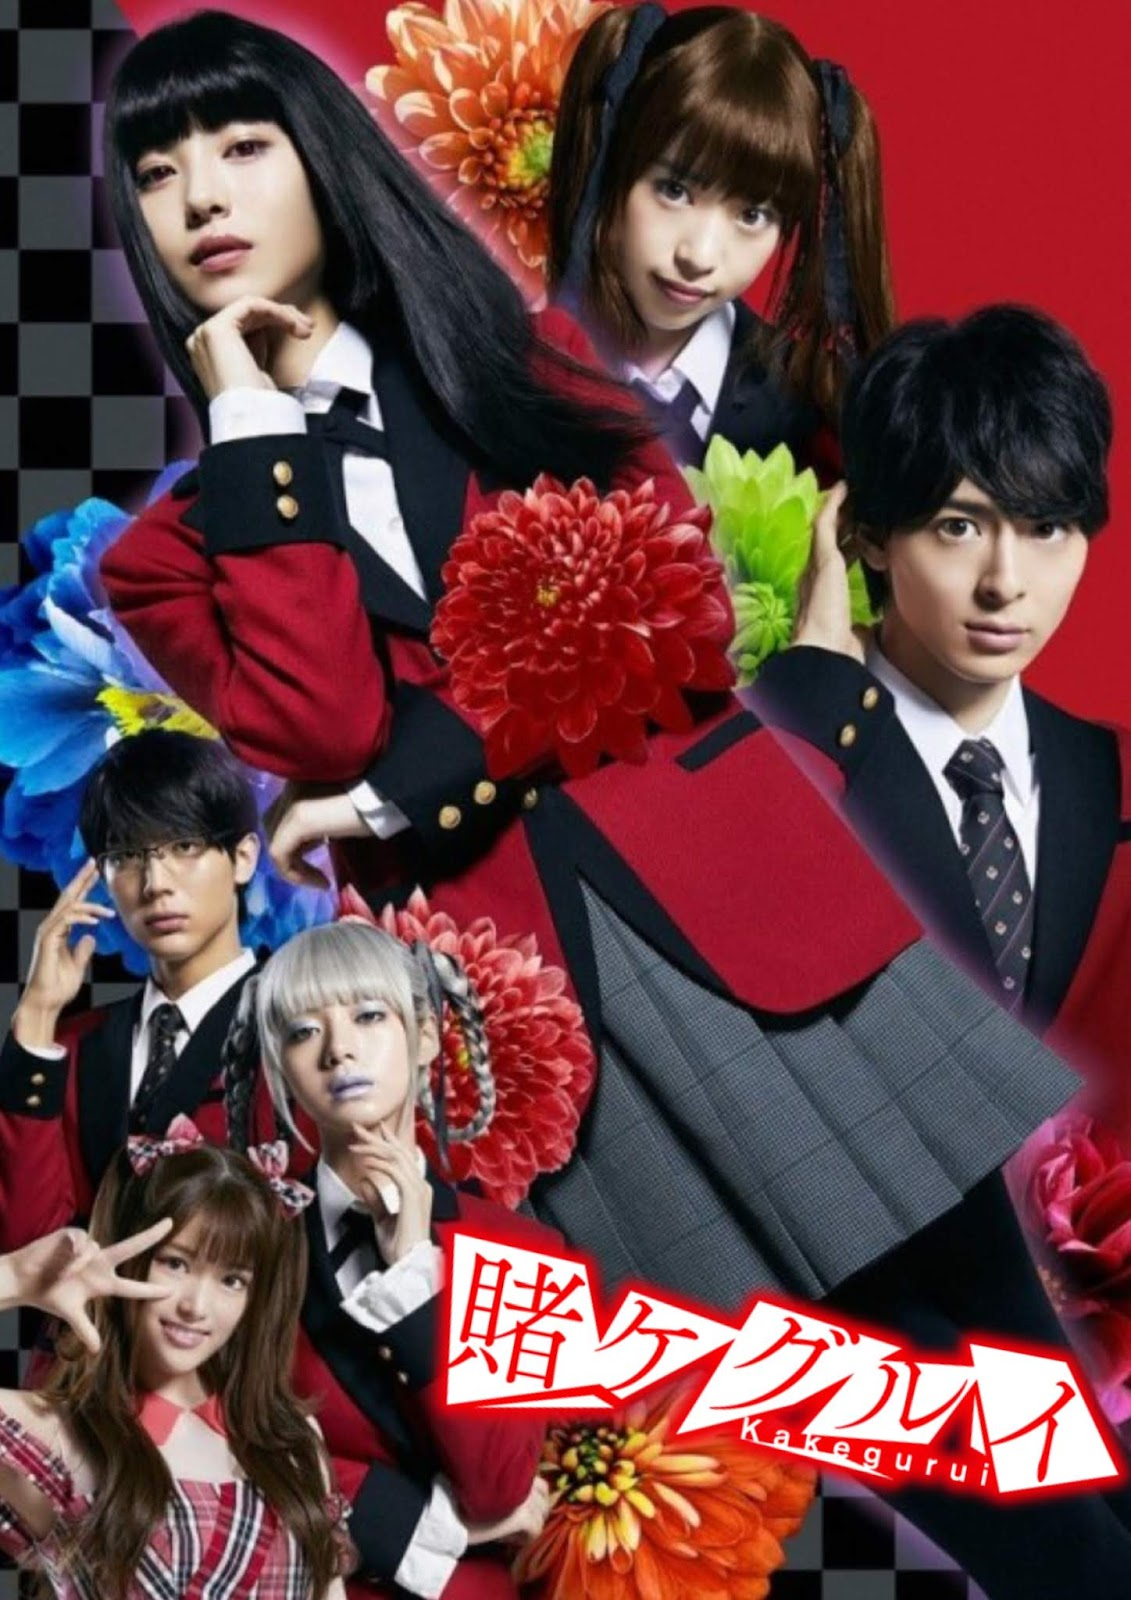 Kakegurui Live Action (2018) Episode 1 - 4 END Subtitle Indonesia